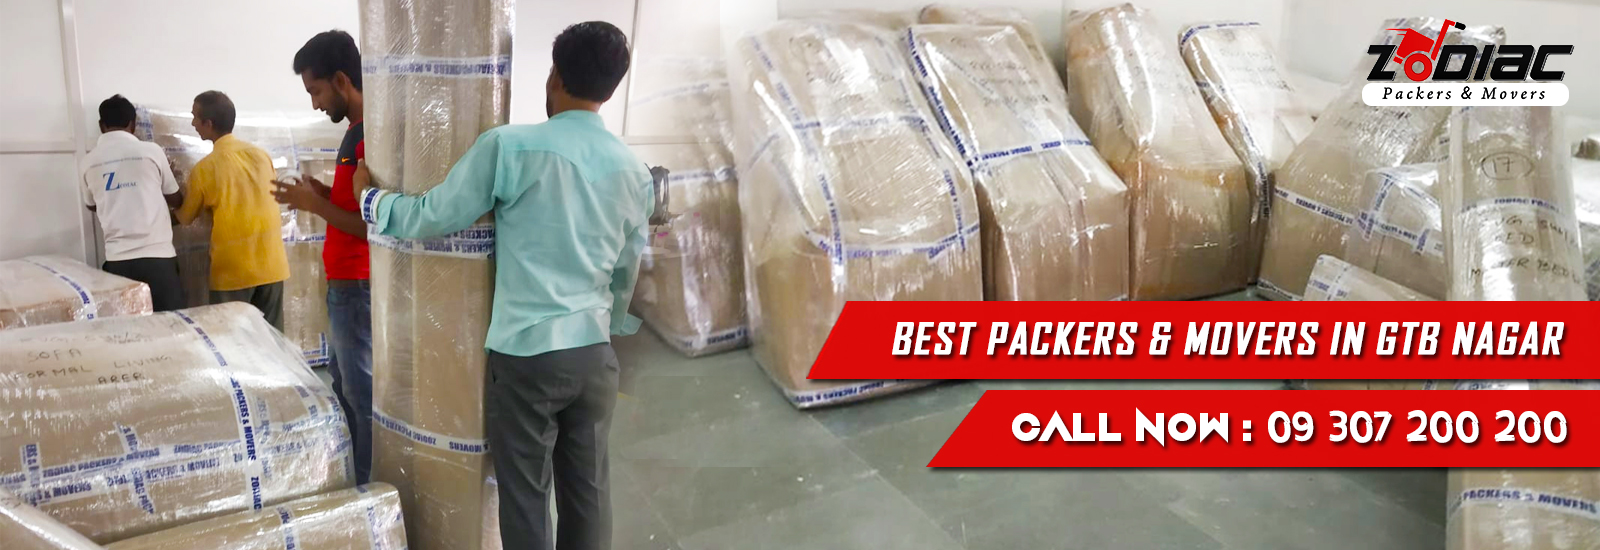 Packers and Movers in GTB Nagar